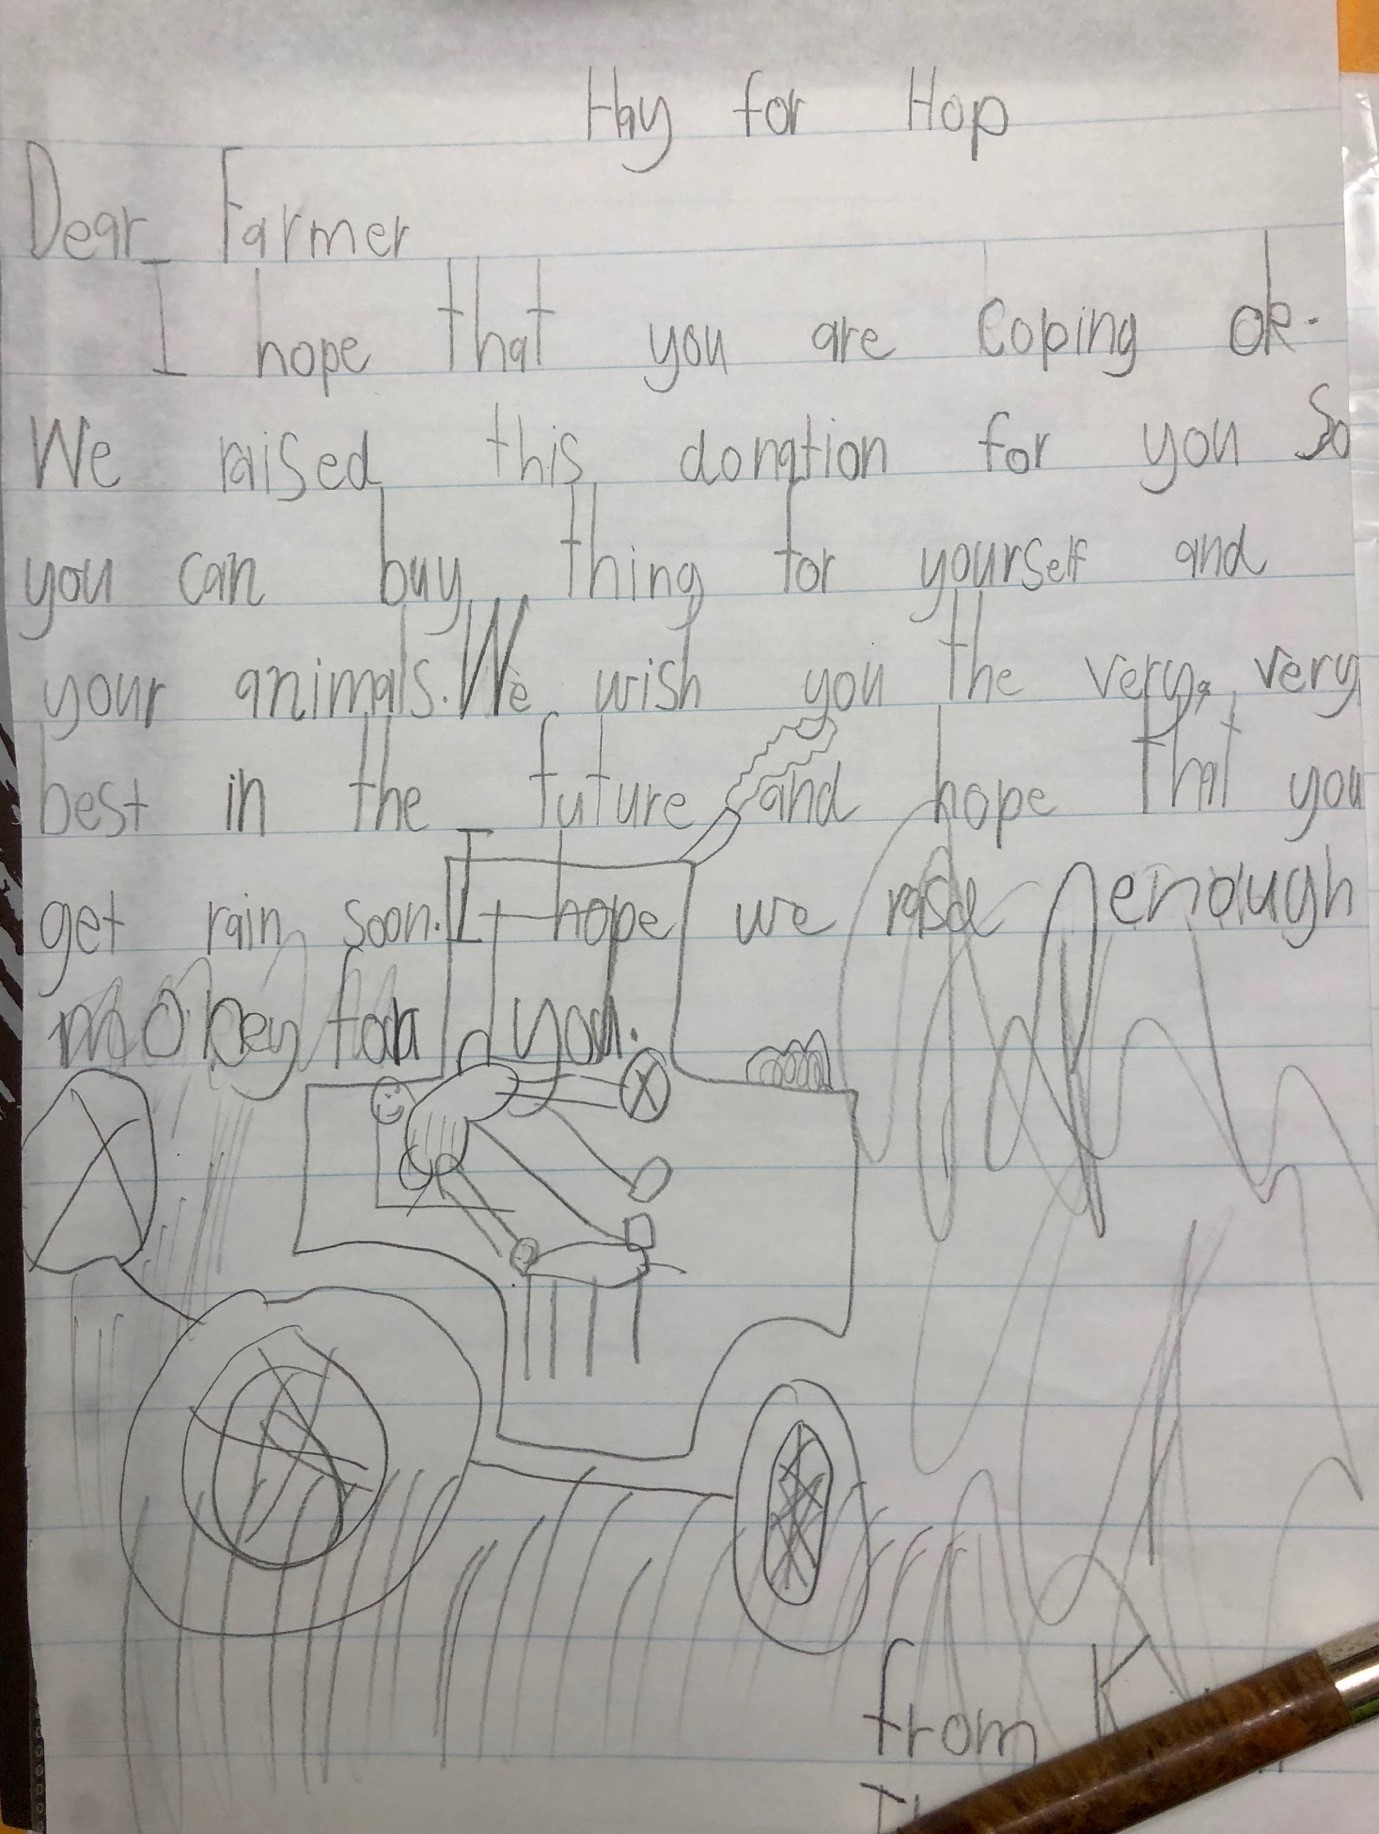 A student helping to raise money via Hay for Hope included this handwritten letter to a farmer